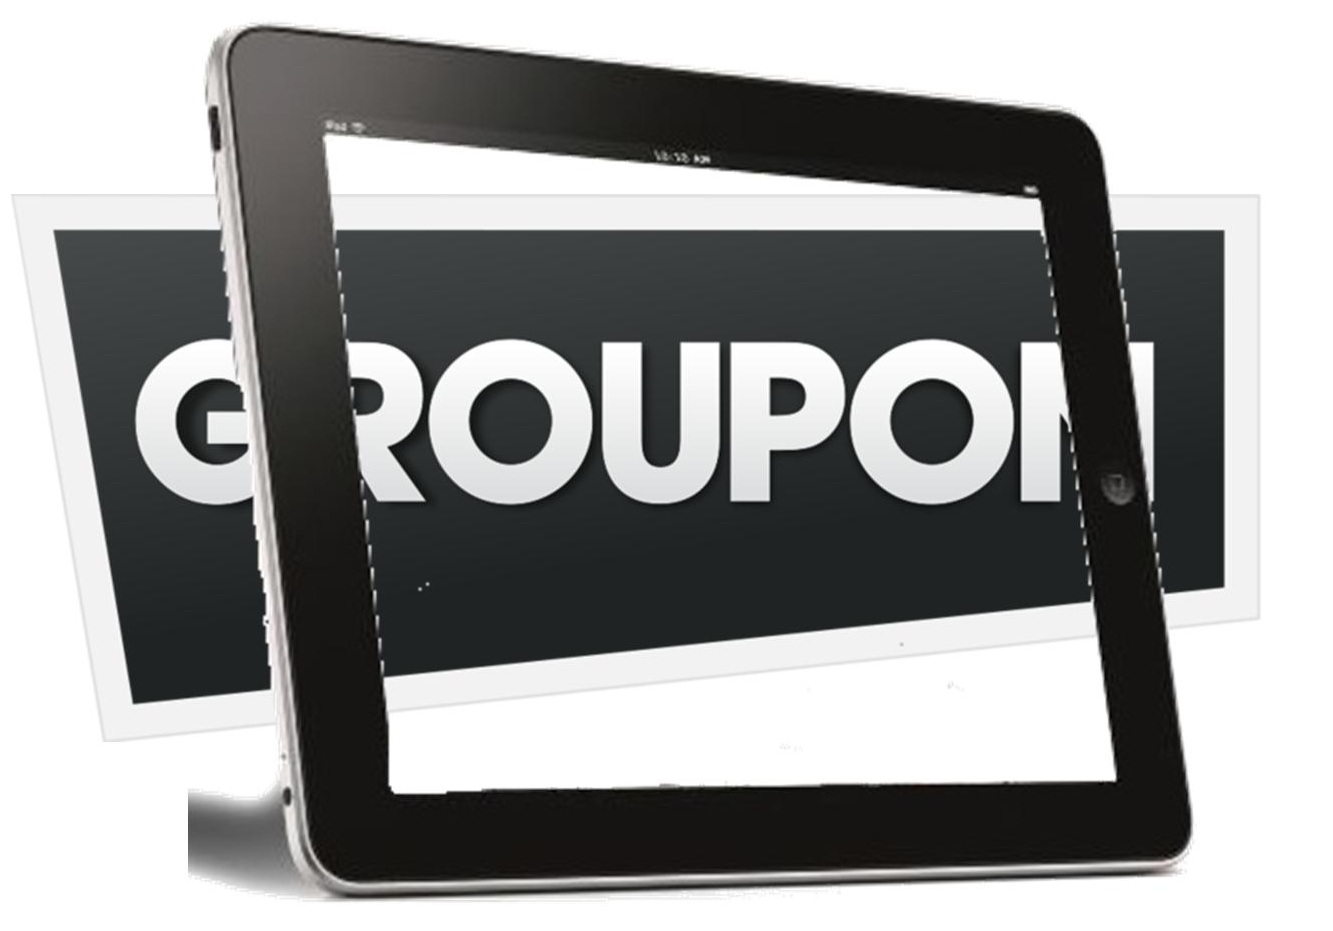 Groupon - Mobile Payments App Accident